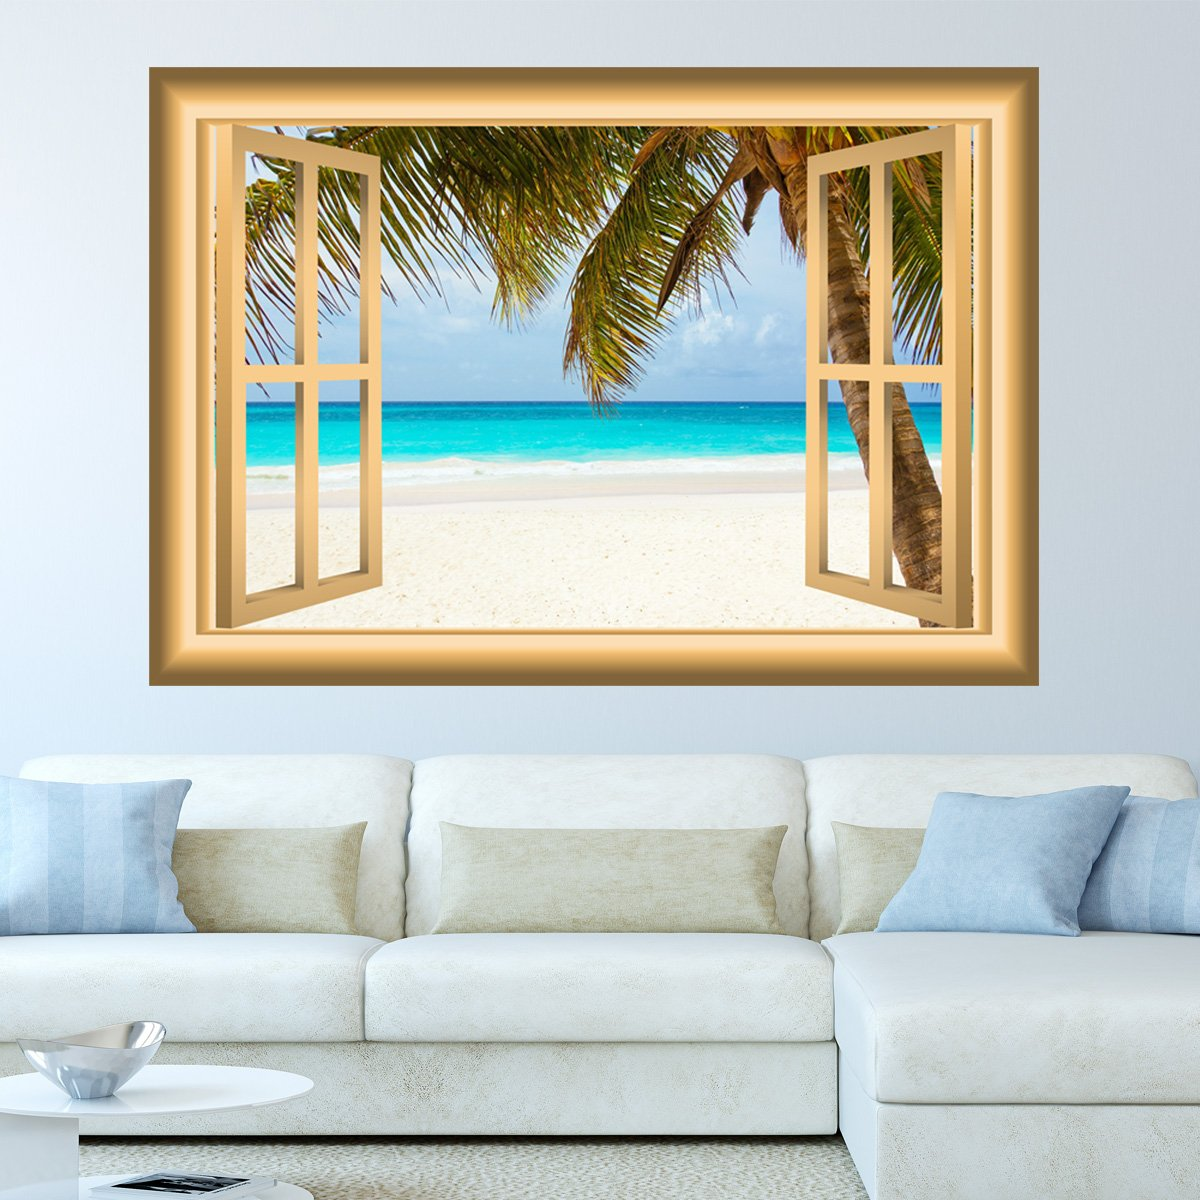 VWAQ Window Frame Wall Decal Beach Scene Ocean Peel and Stick Mural